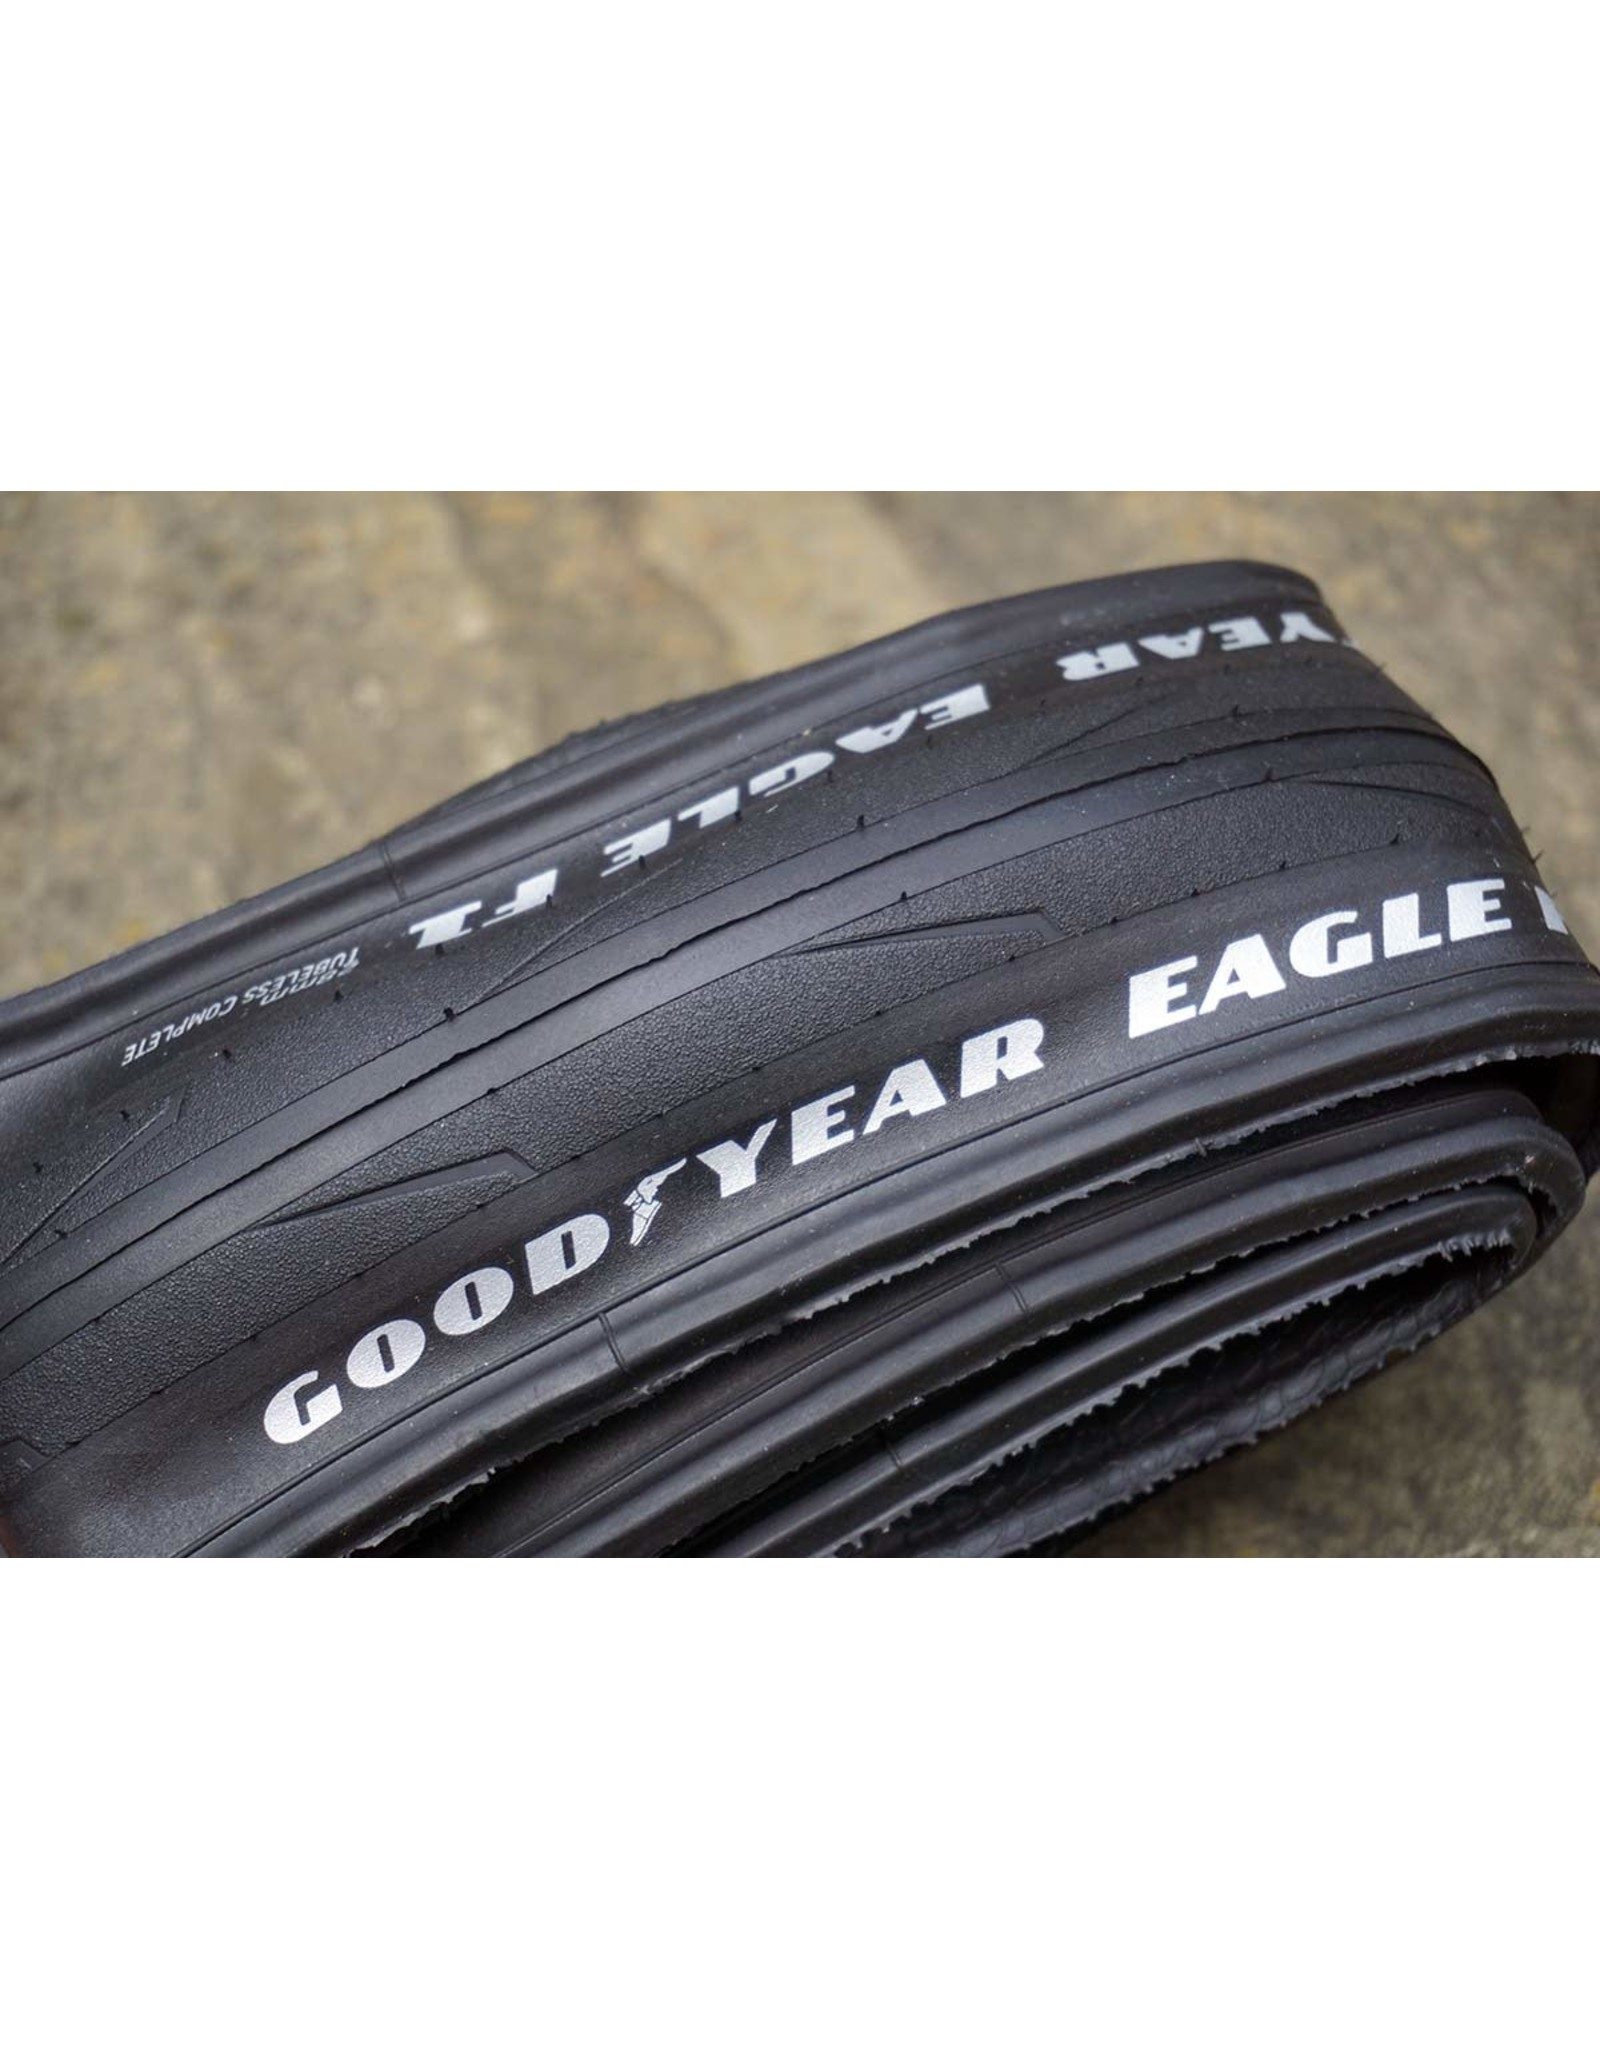 GOODYEAR EAGLE F1 TUBE TYPE TYRE FOLDING